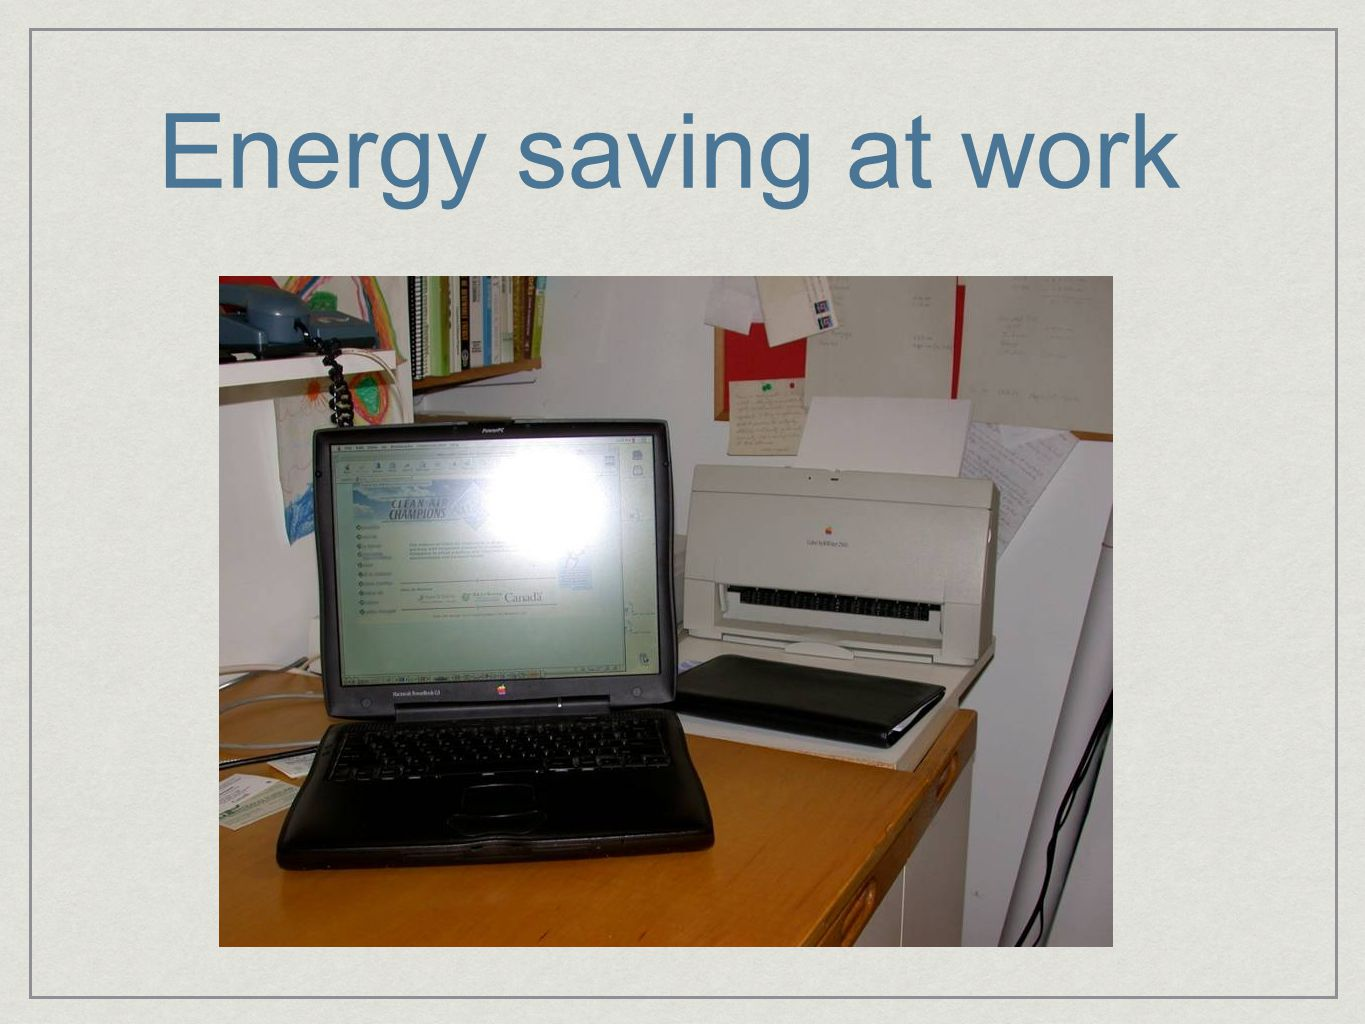 Energy saving at work